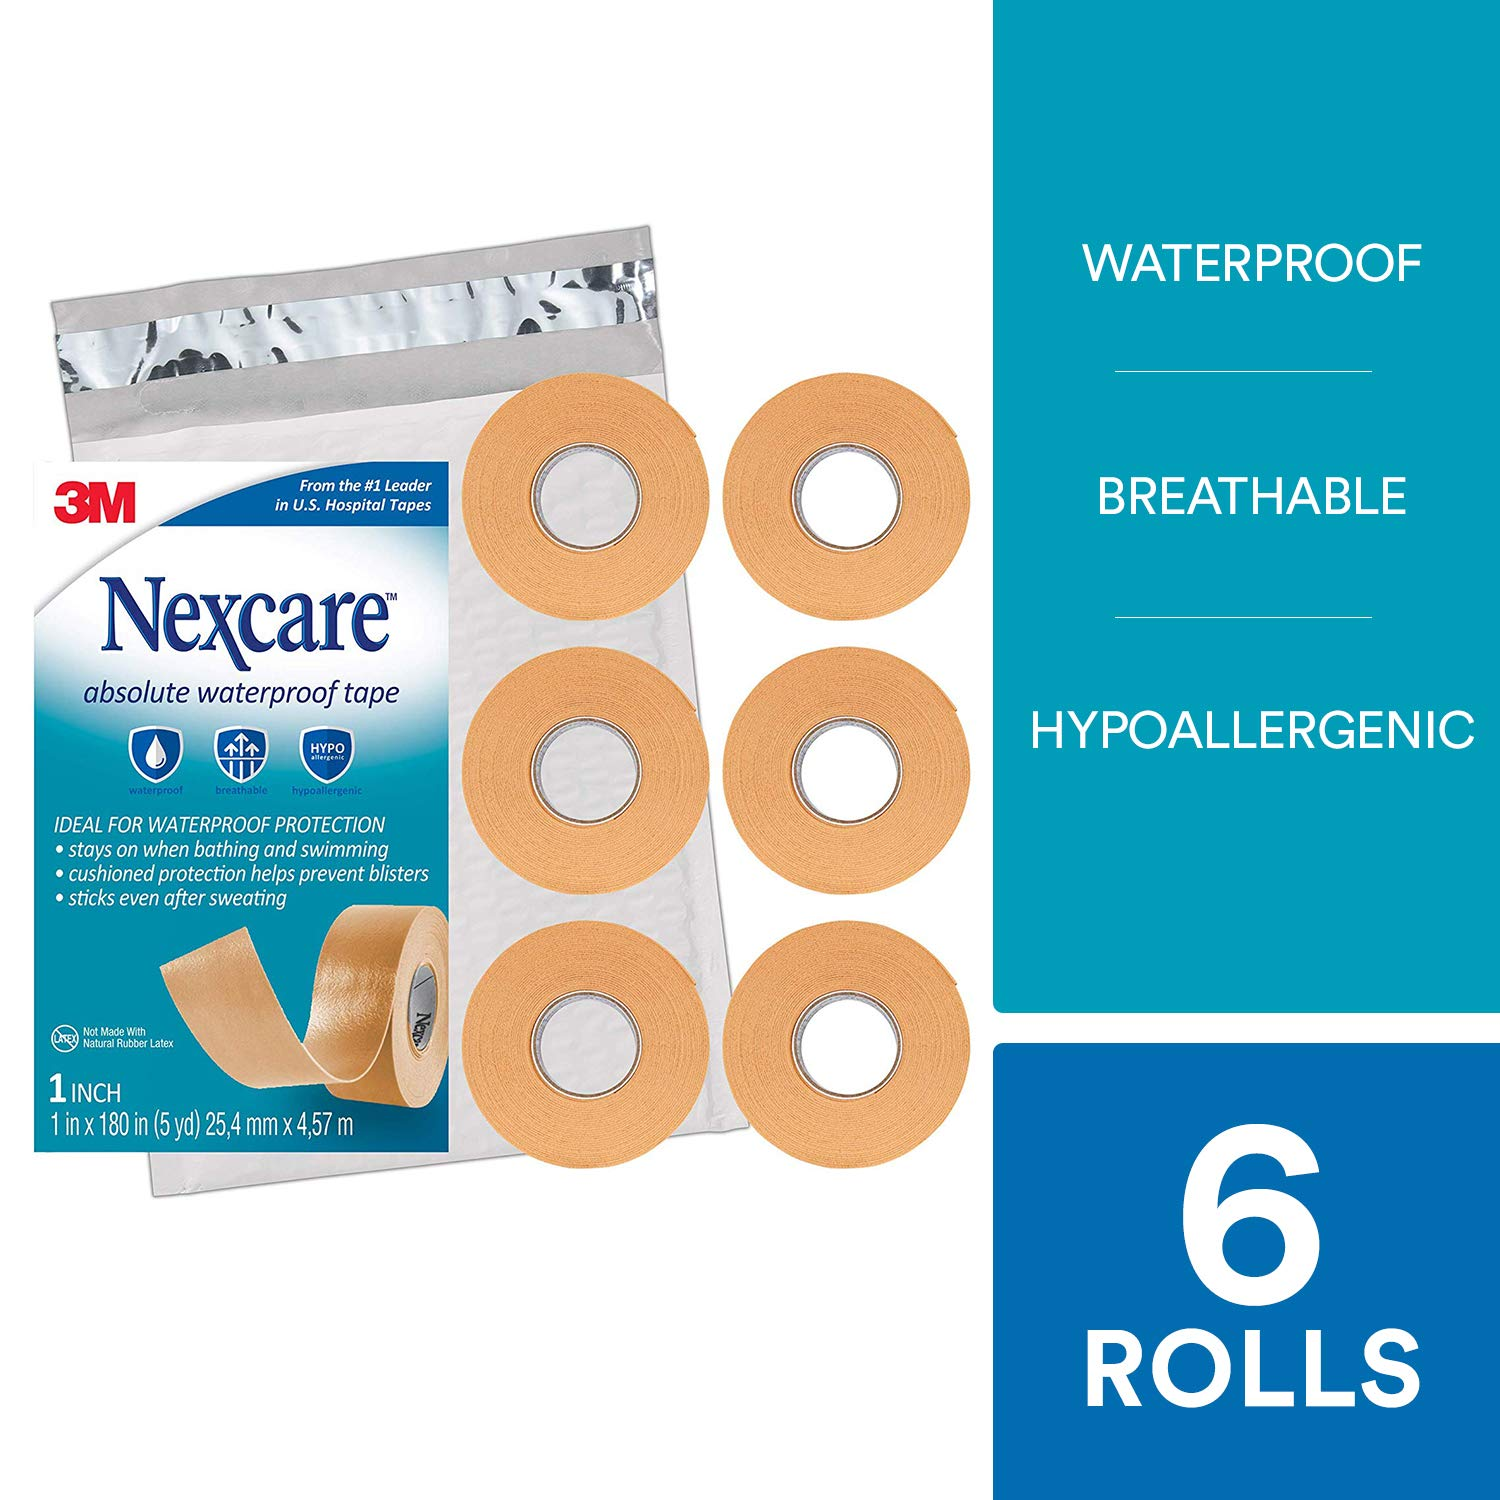 Nexcare Absolute Waterproof First Aid Tape SIOC, Made by 3M, 1-Inch x 5-Yard Roll (Pack of 6)